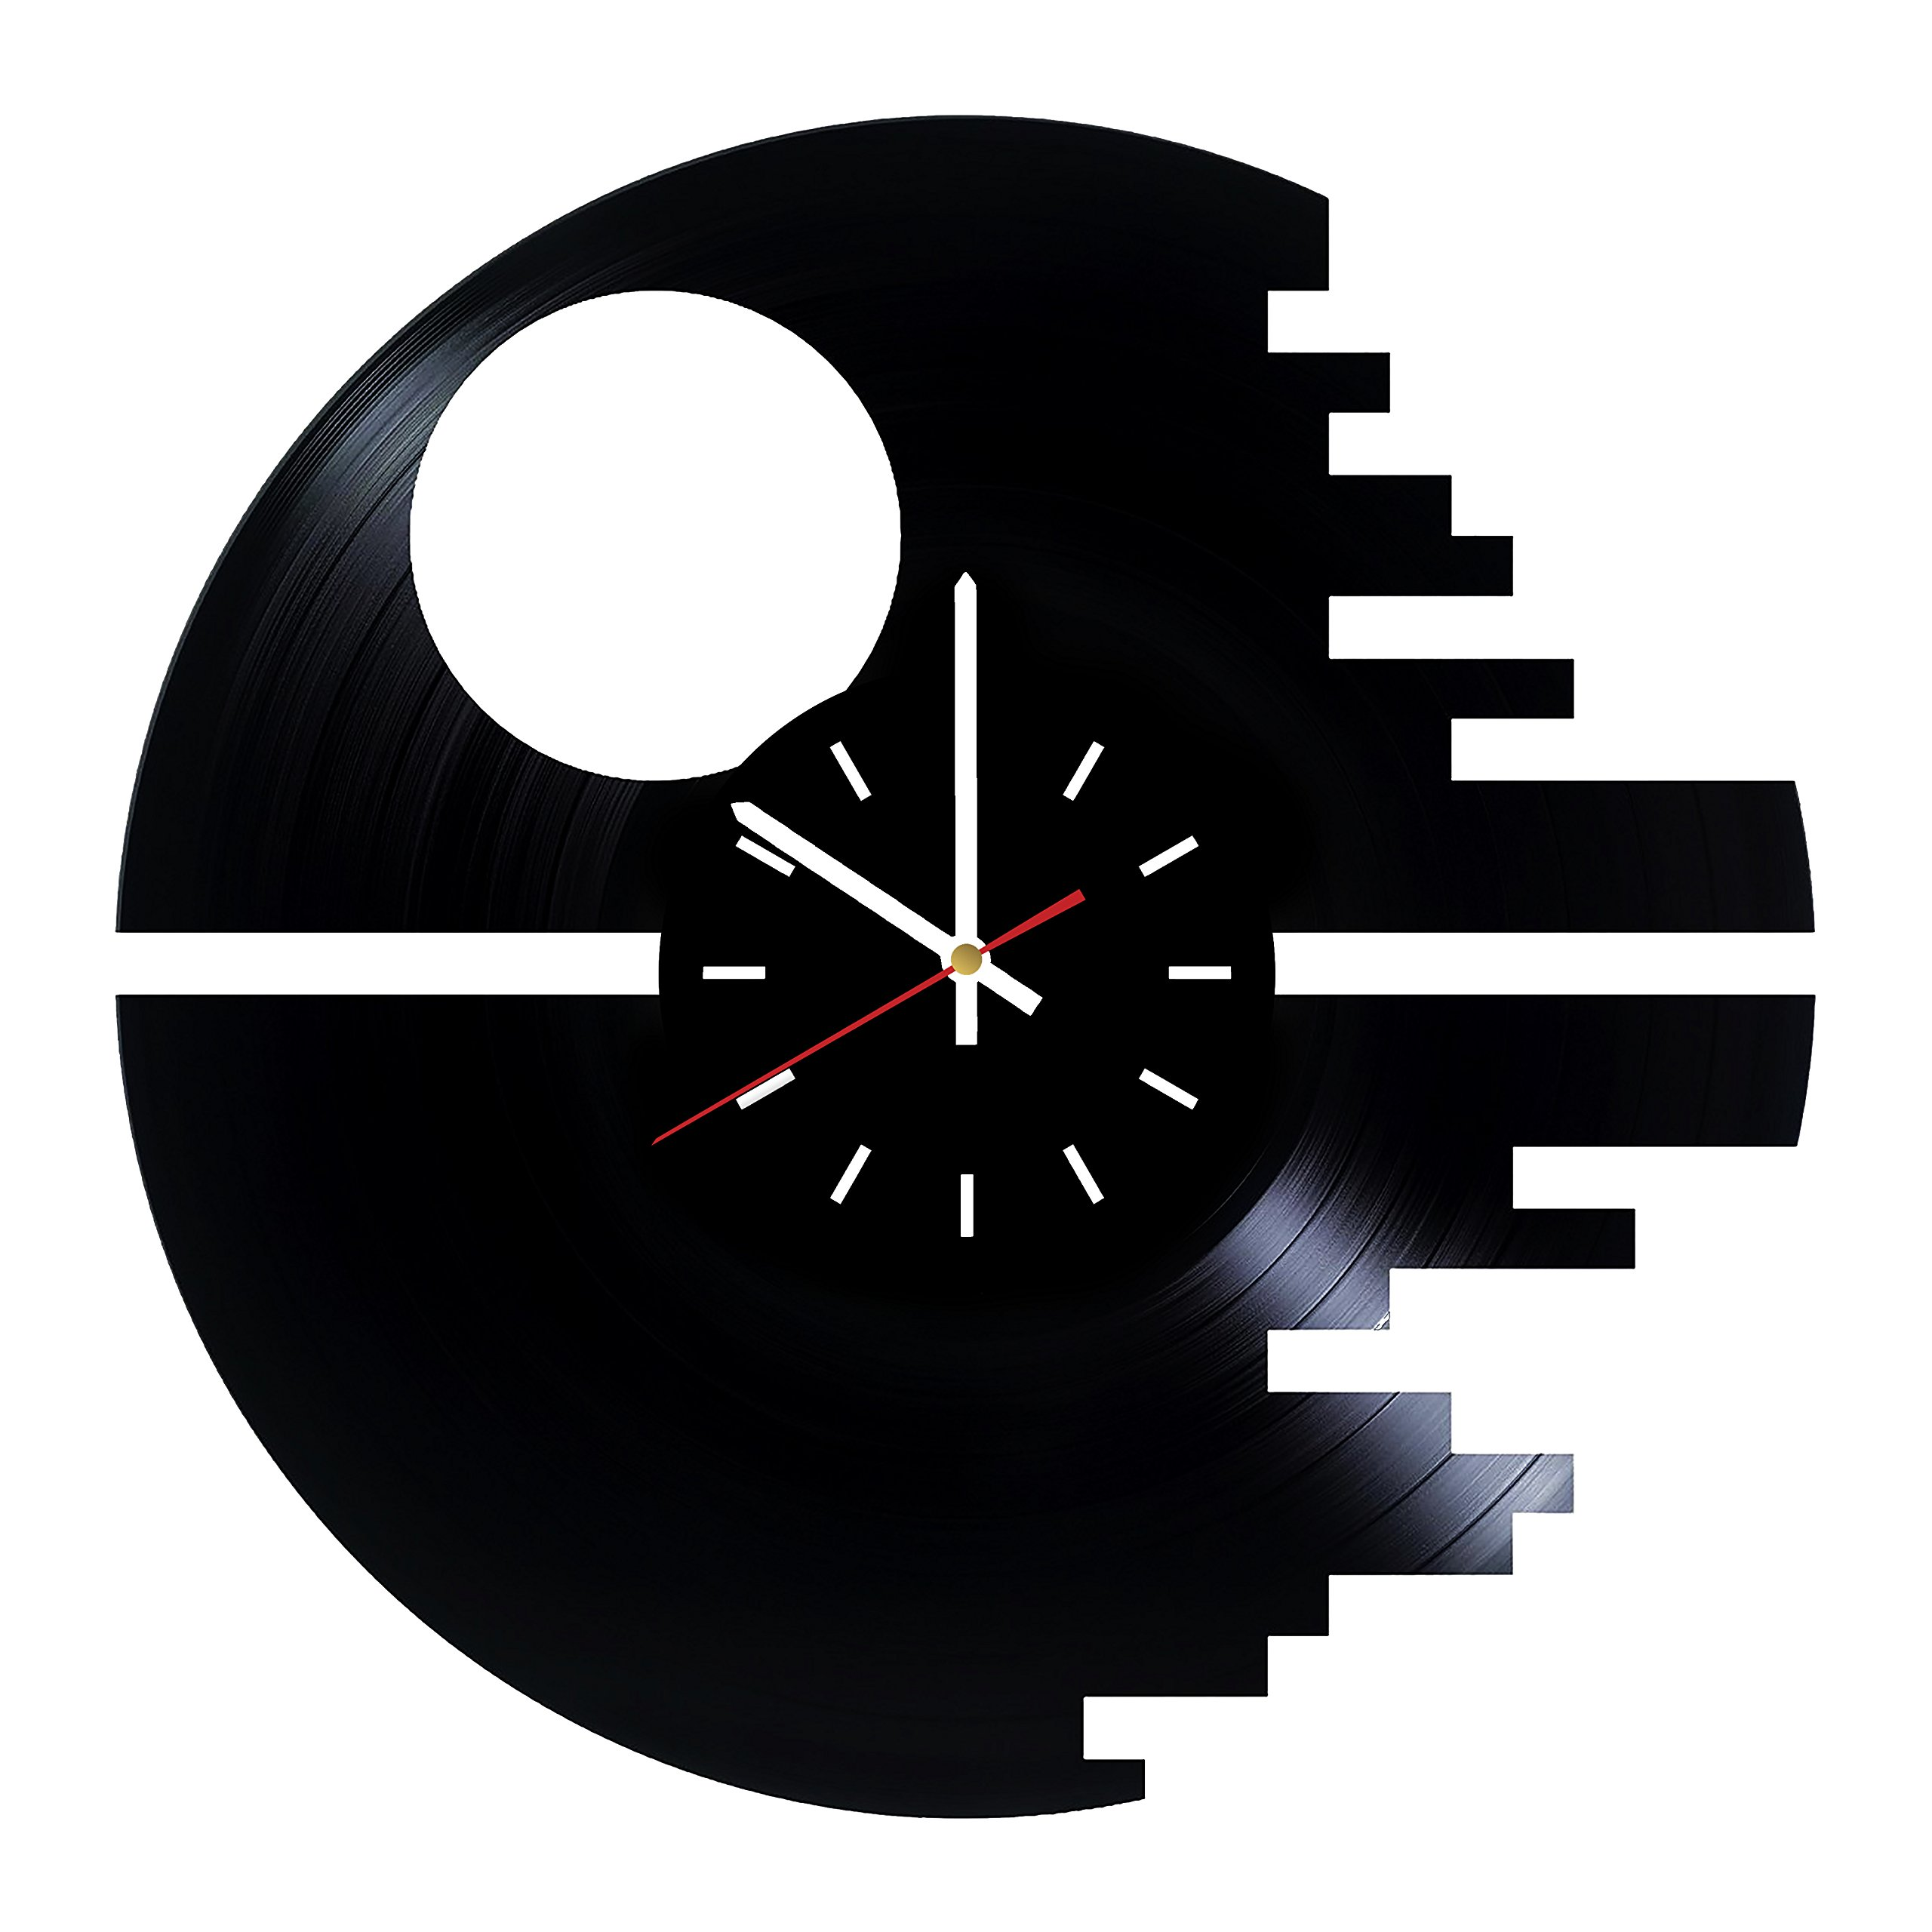 Everyday Arts Death Star Emblem Design Vinyl Record Wall Clock - Get Unique Bedroom or Garage Wall Decor - Gift Ideas for Friends, Brother - Darth Vader Unique Modern Art by Everyday Arts (Image #1)